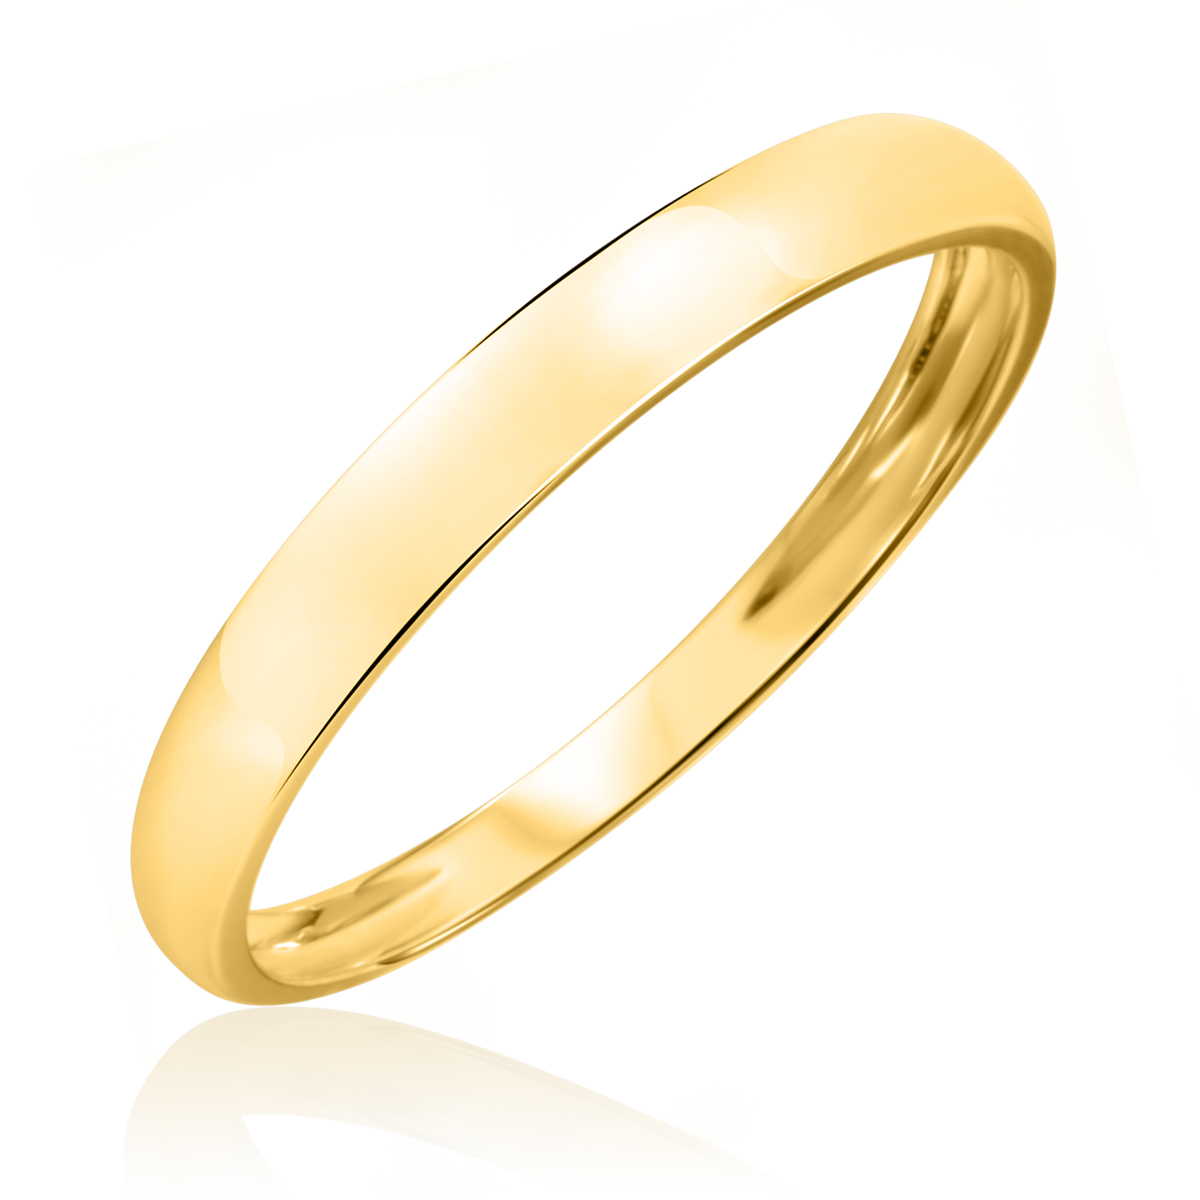 Traditional High Polish, 3 millimeter, 14K Yellow Gold Men's Wedding Band- Size